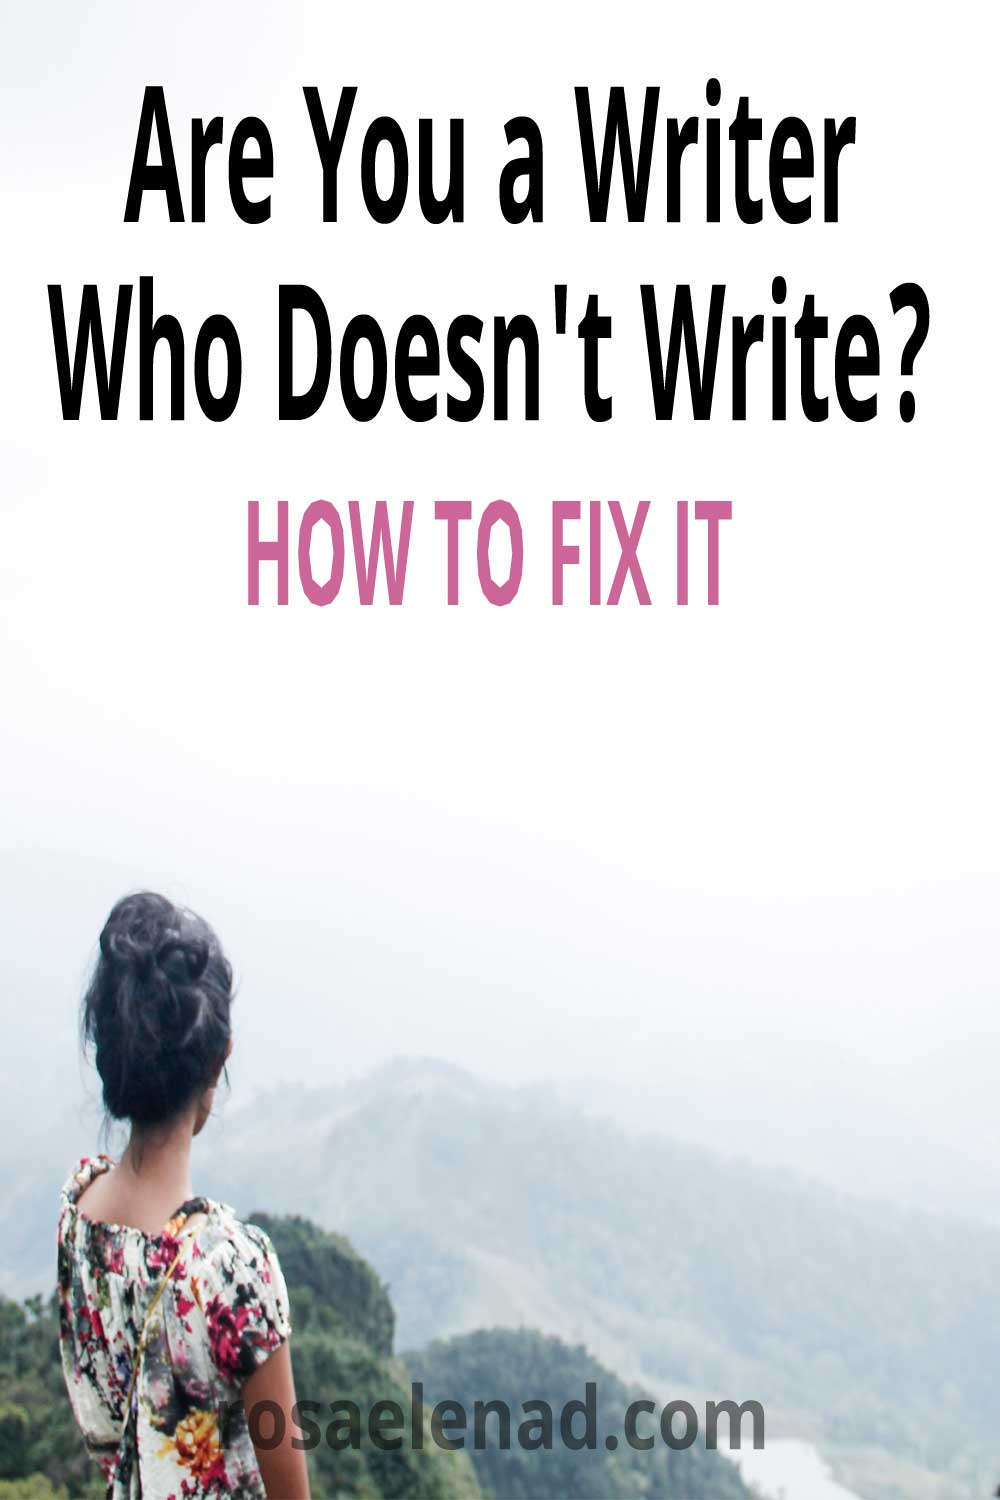 Effective Writing Help: How to Deal with Writer's Block